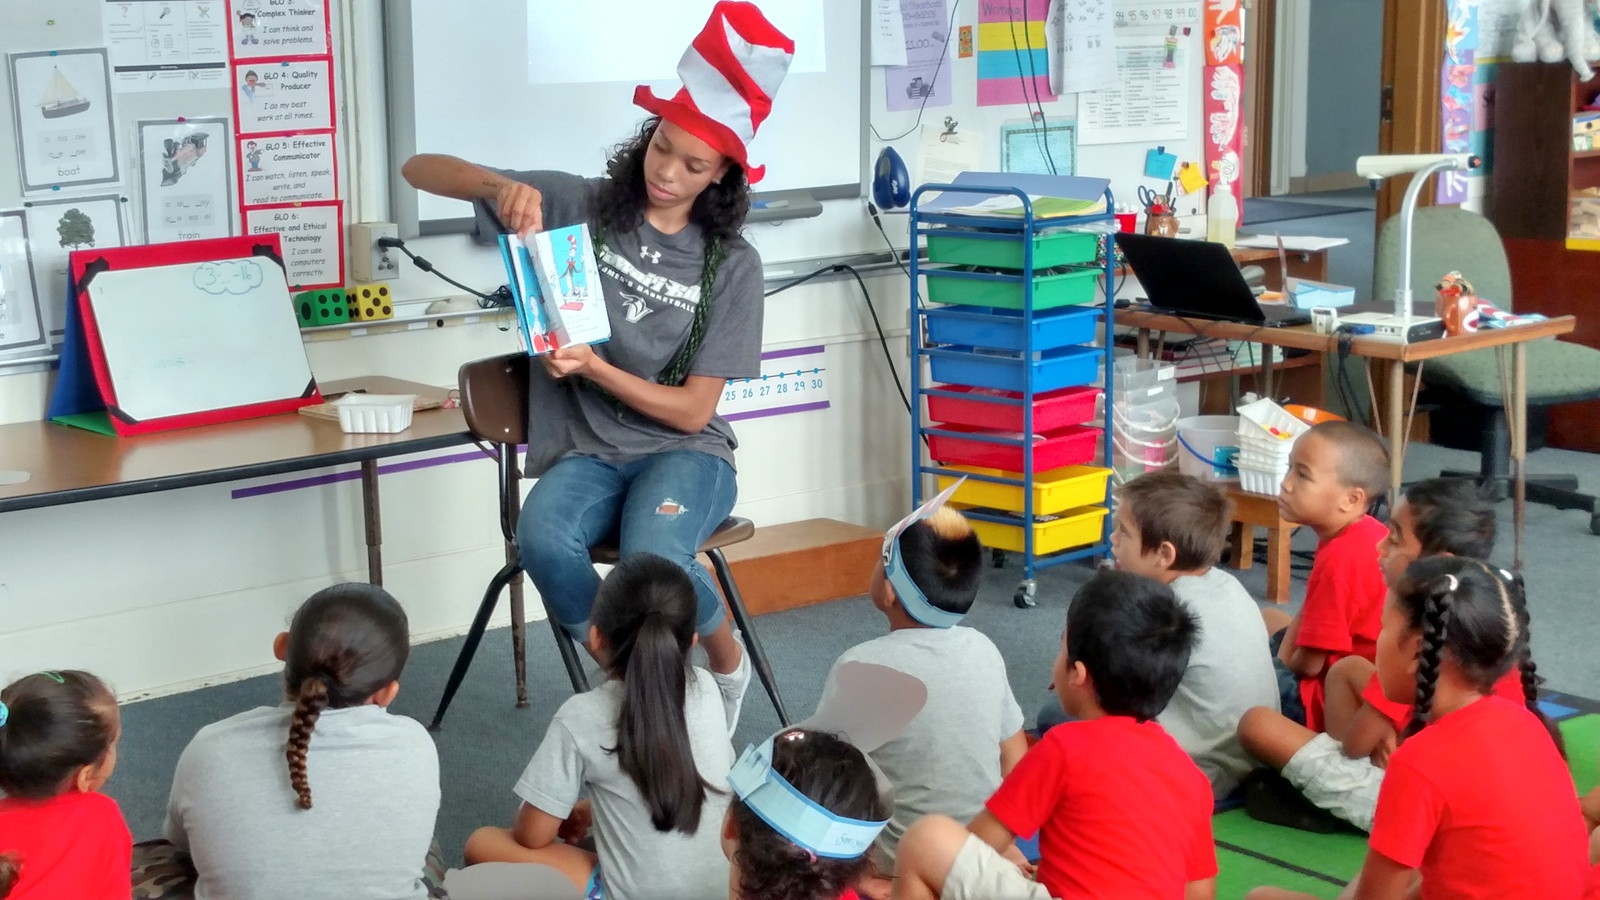 Basketball Vulcan Alia Alvarez wears a Dr. Seuss striped top hat and reads to school children gathered around her.